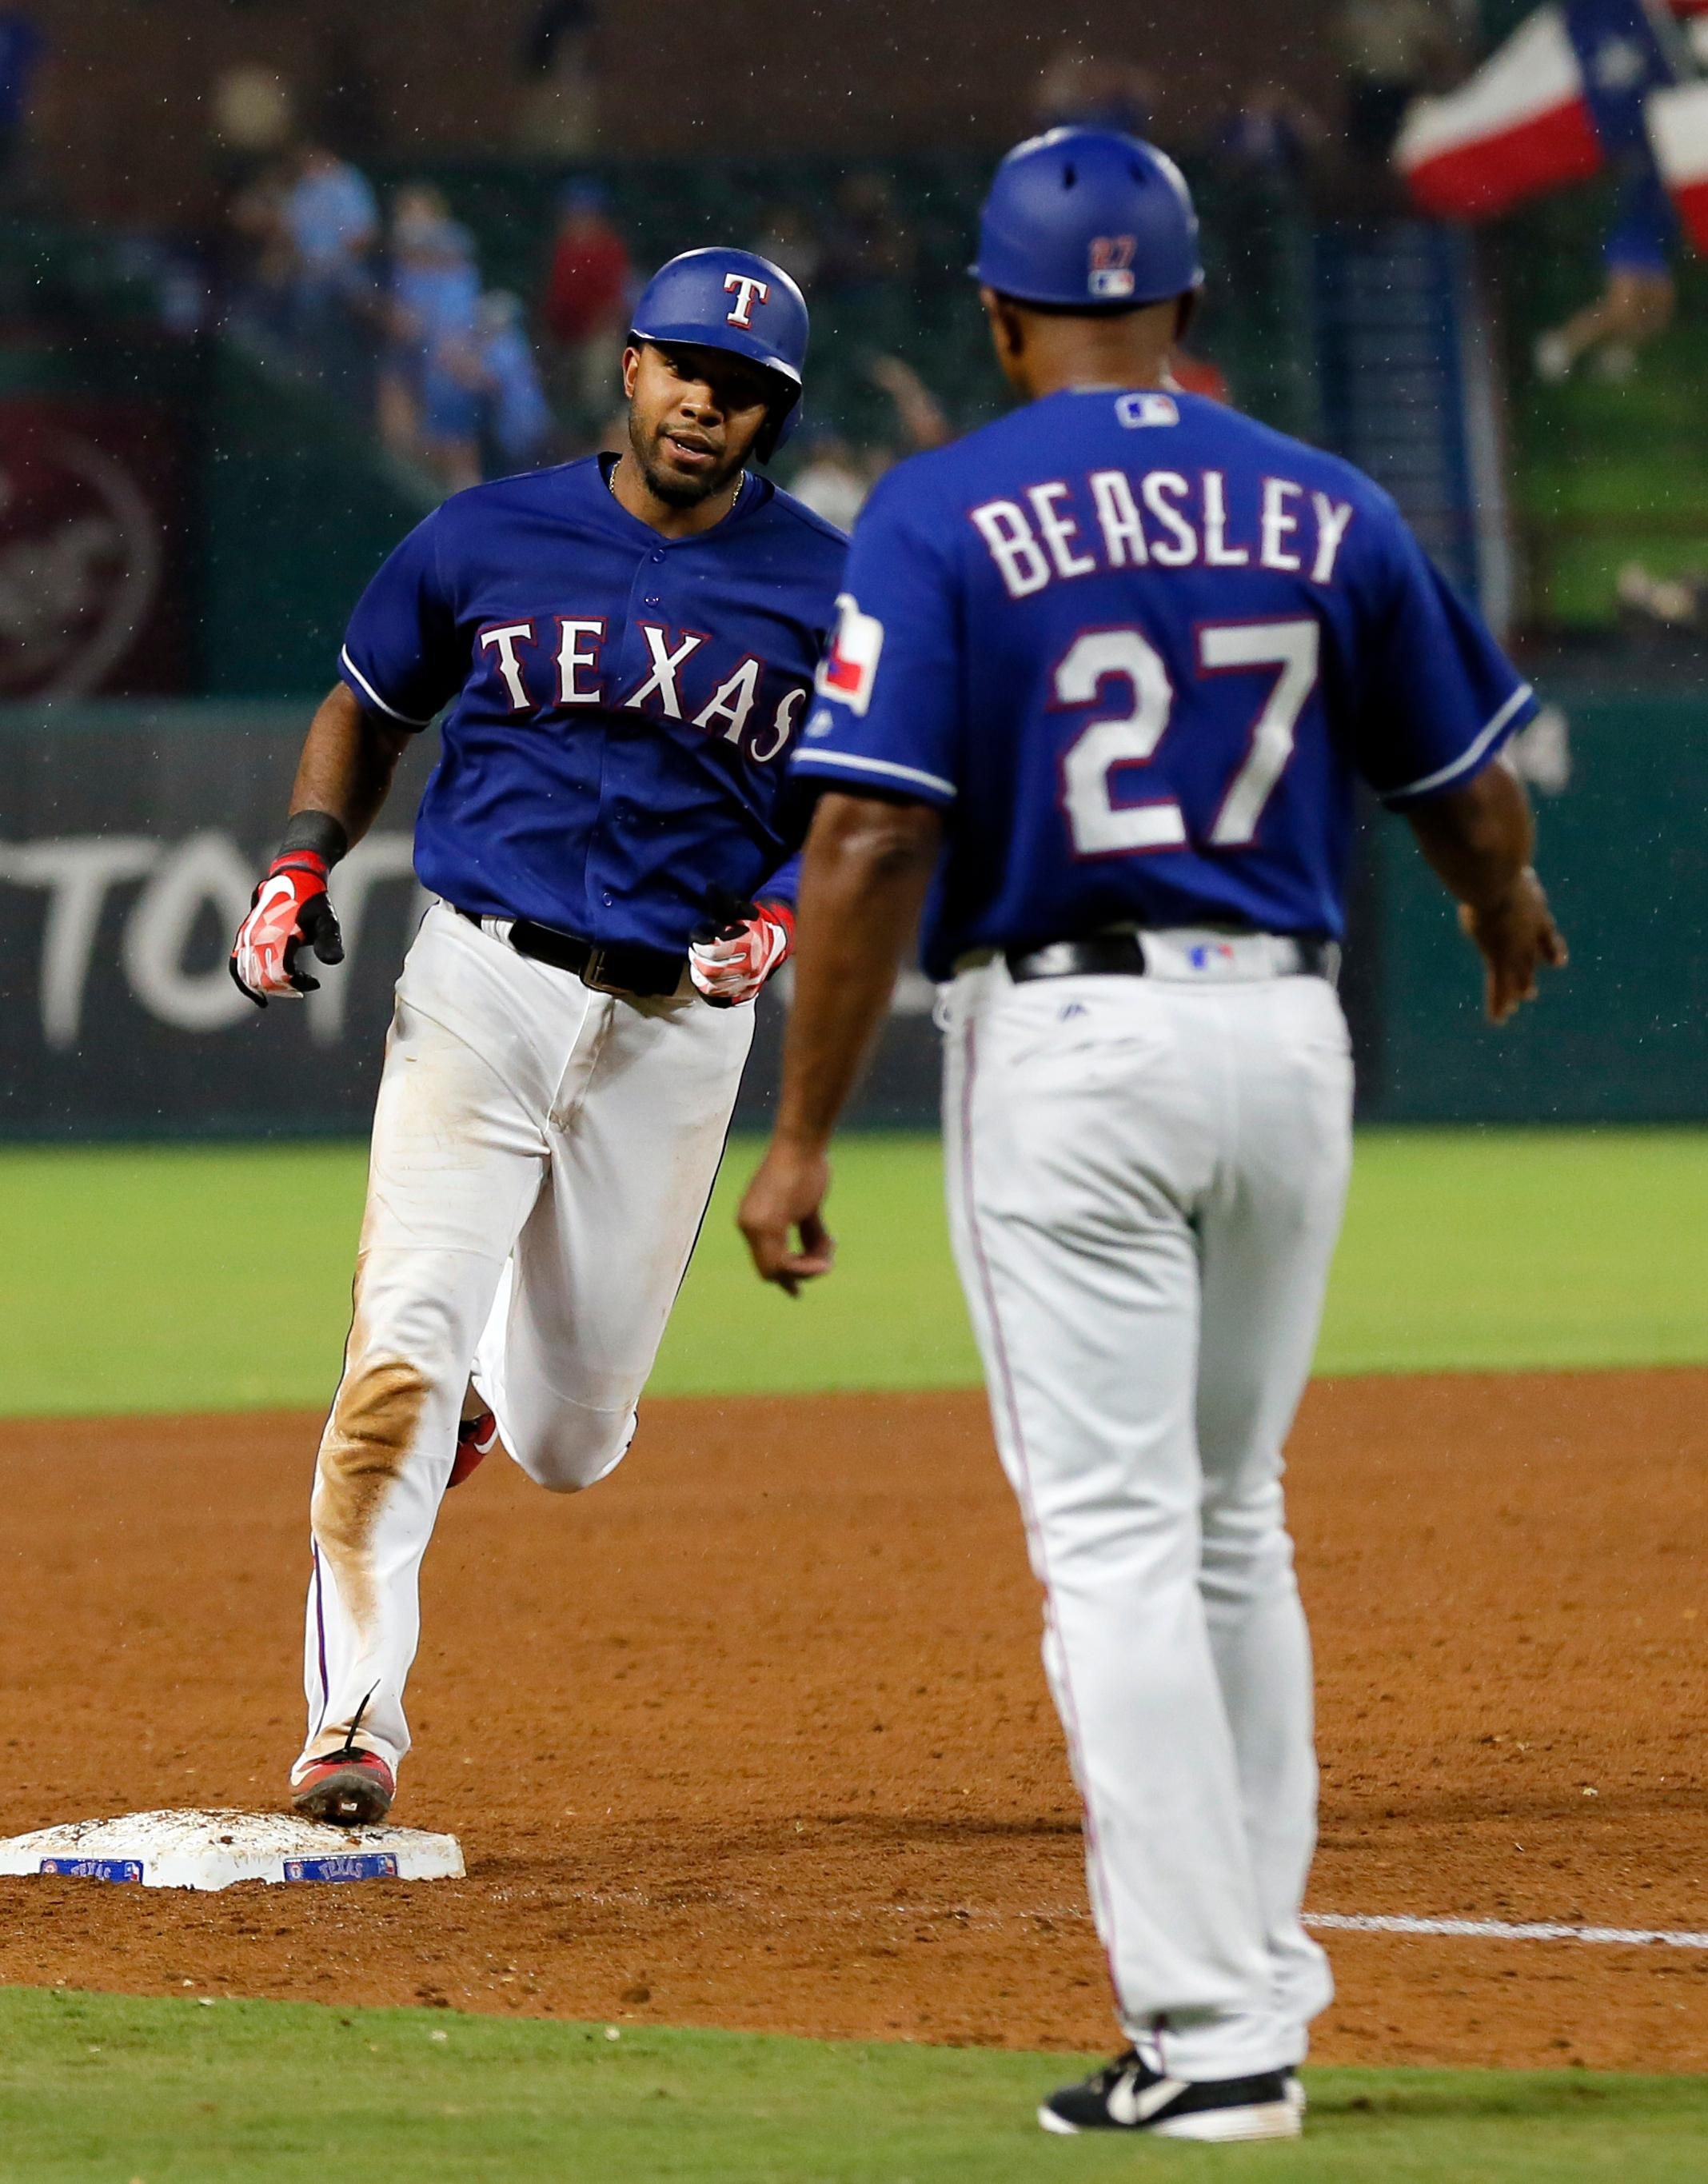 Texas Rangers' Elvis Andrus, left, rounds third past third base coach Tony Beasley (27) after hitting a two-run home run during the sixth inning of a baseball game against the Seattle Mariners on Wednesday, Aug. 2, 2017, in Arlington, Texas. (AP Photo/Tony Gutierrez)